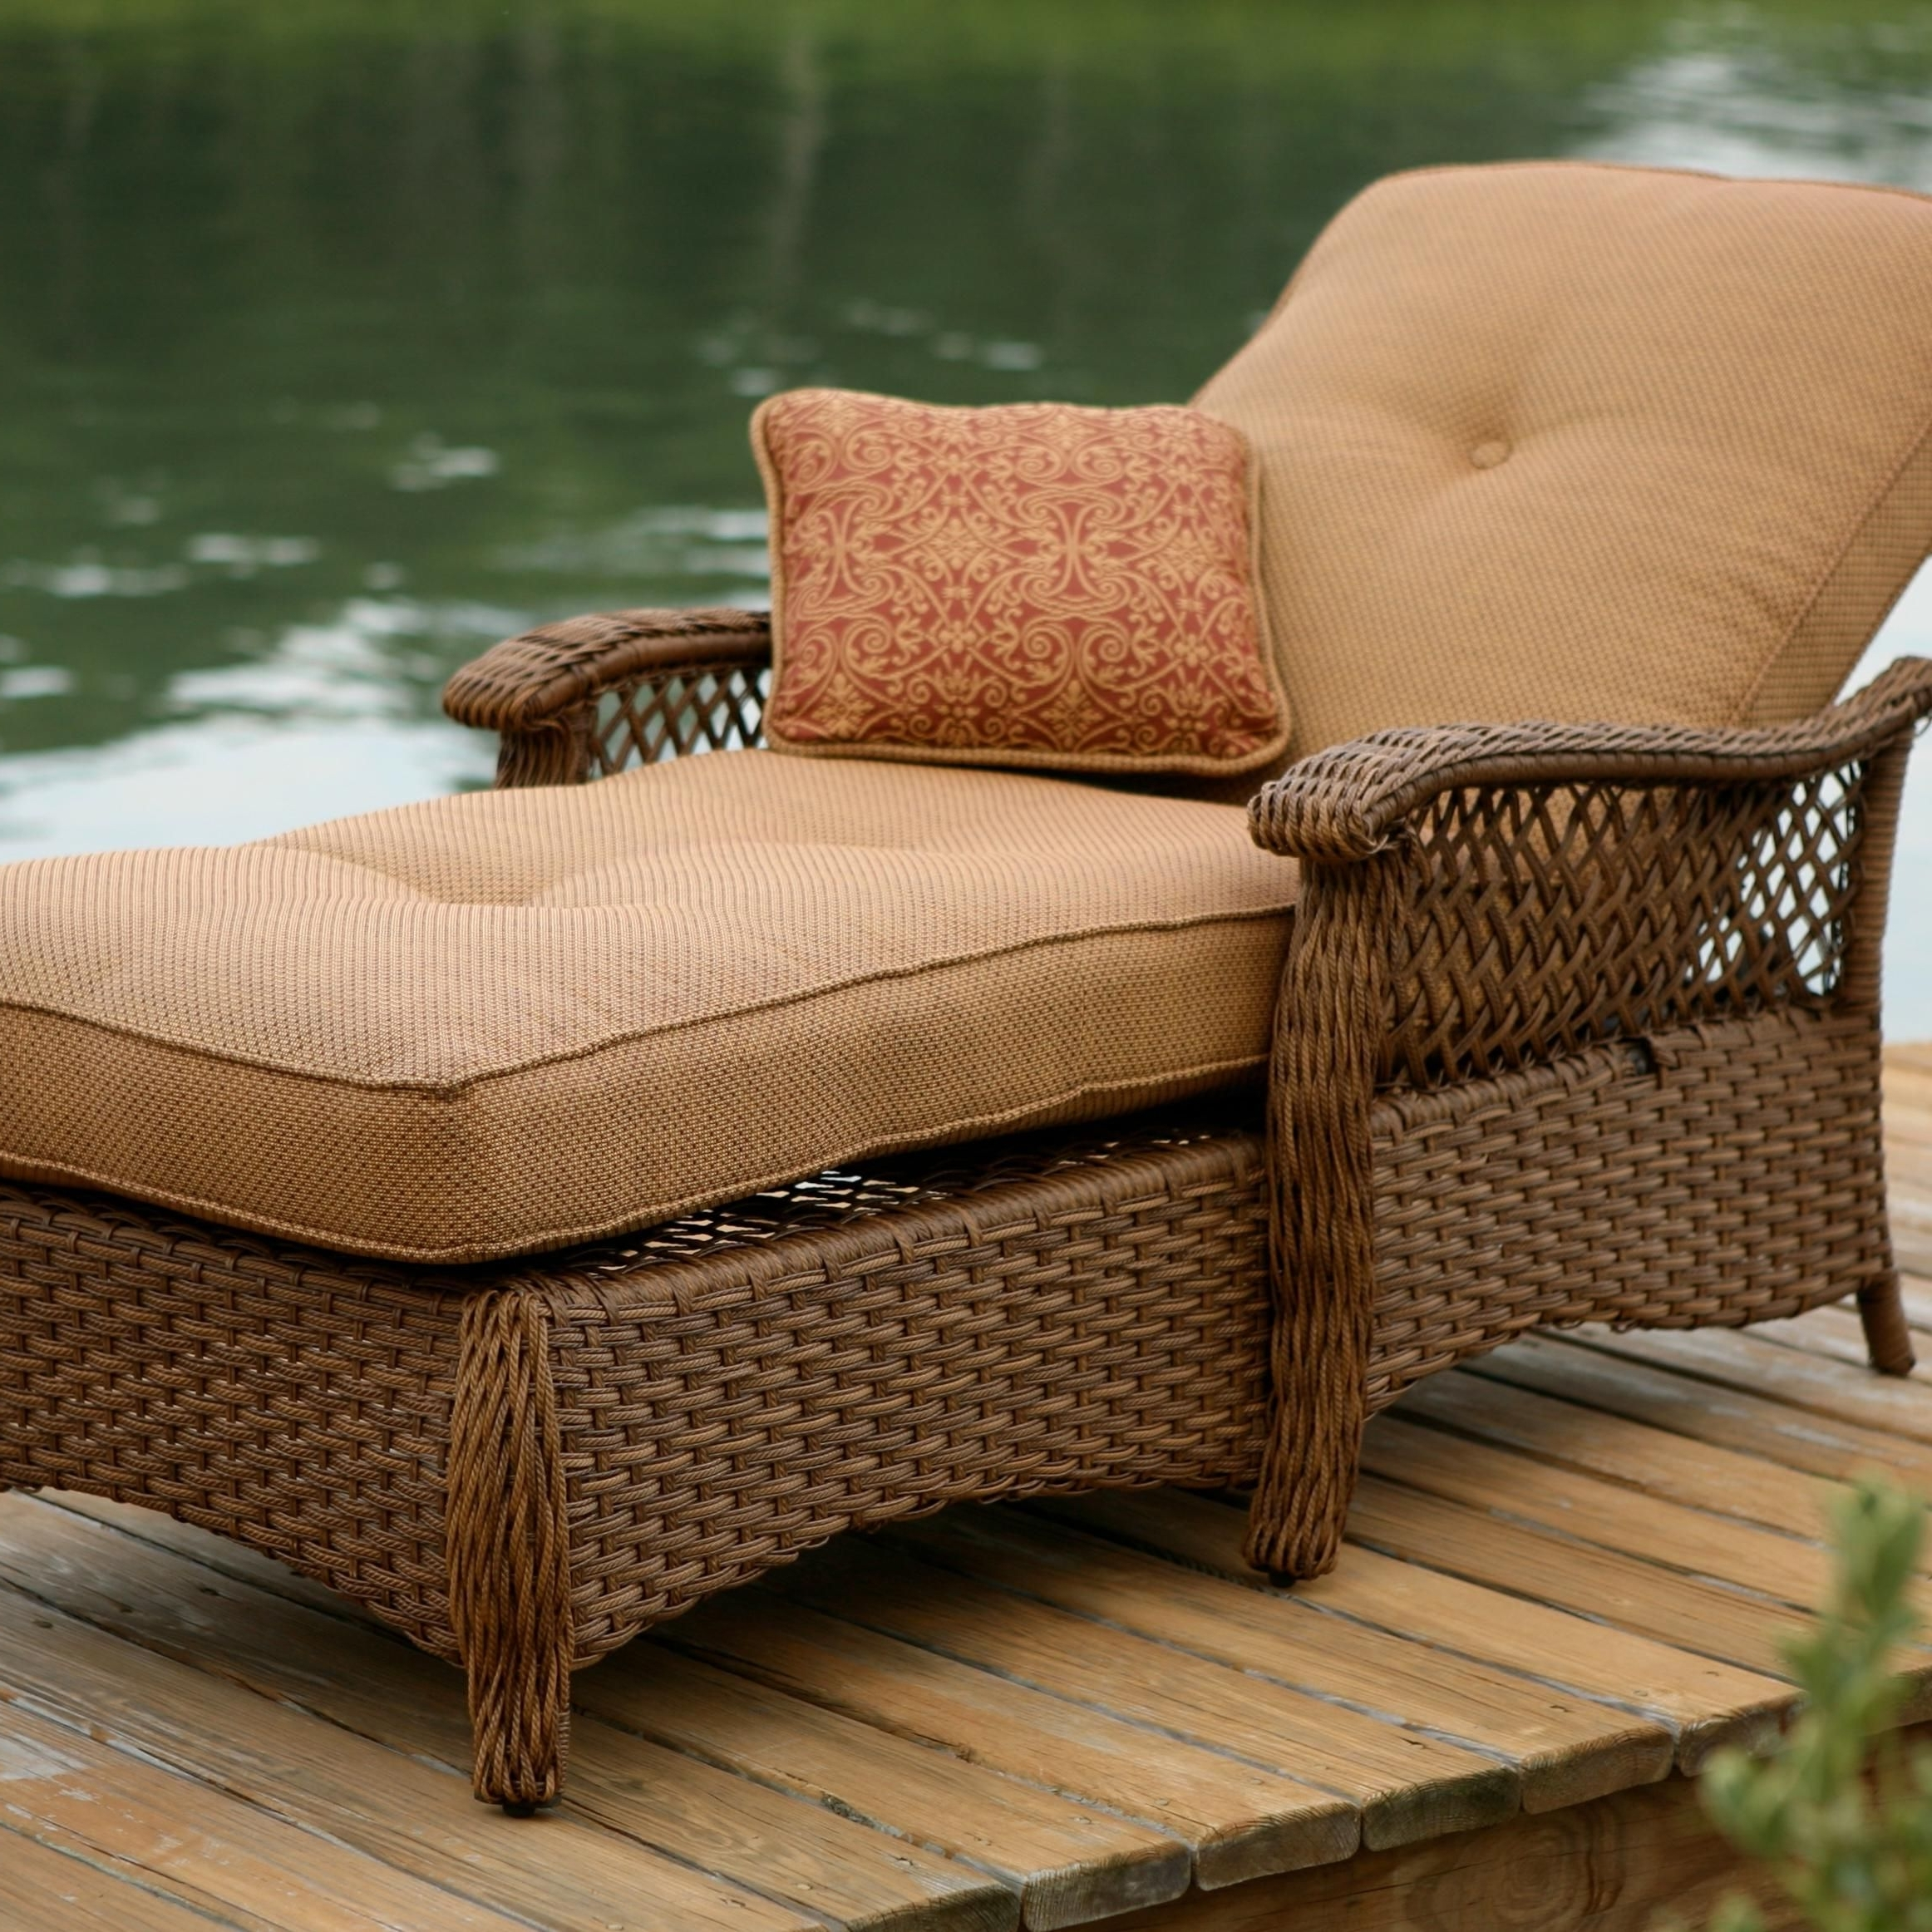 Best And Newest Outdoor Pool Furniture Chaise Lounges Regarding Veranda–Agio Outdoor Woven Chaise Loungeagio (View 2 of 15)